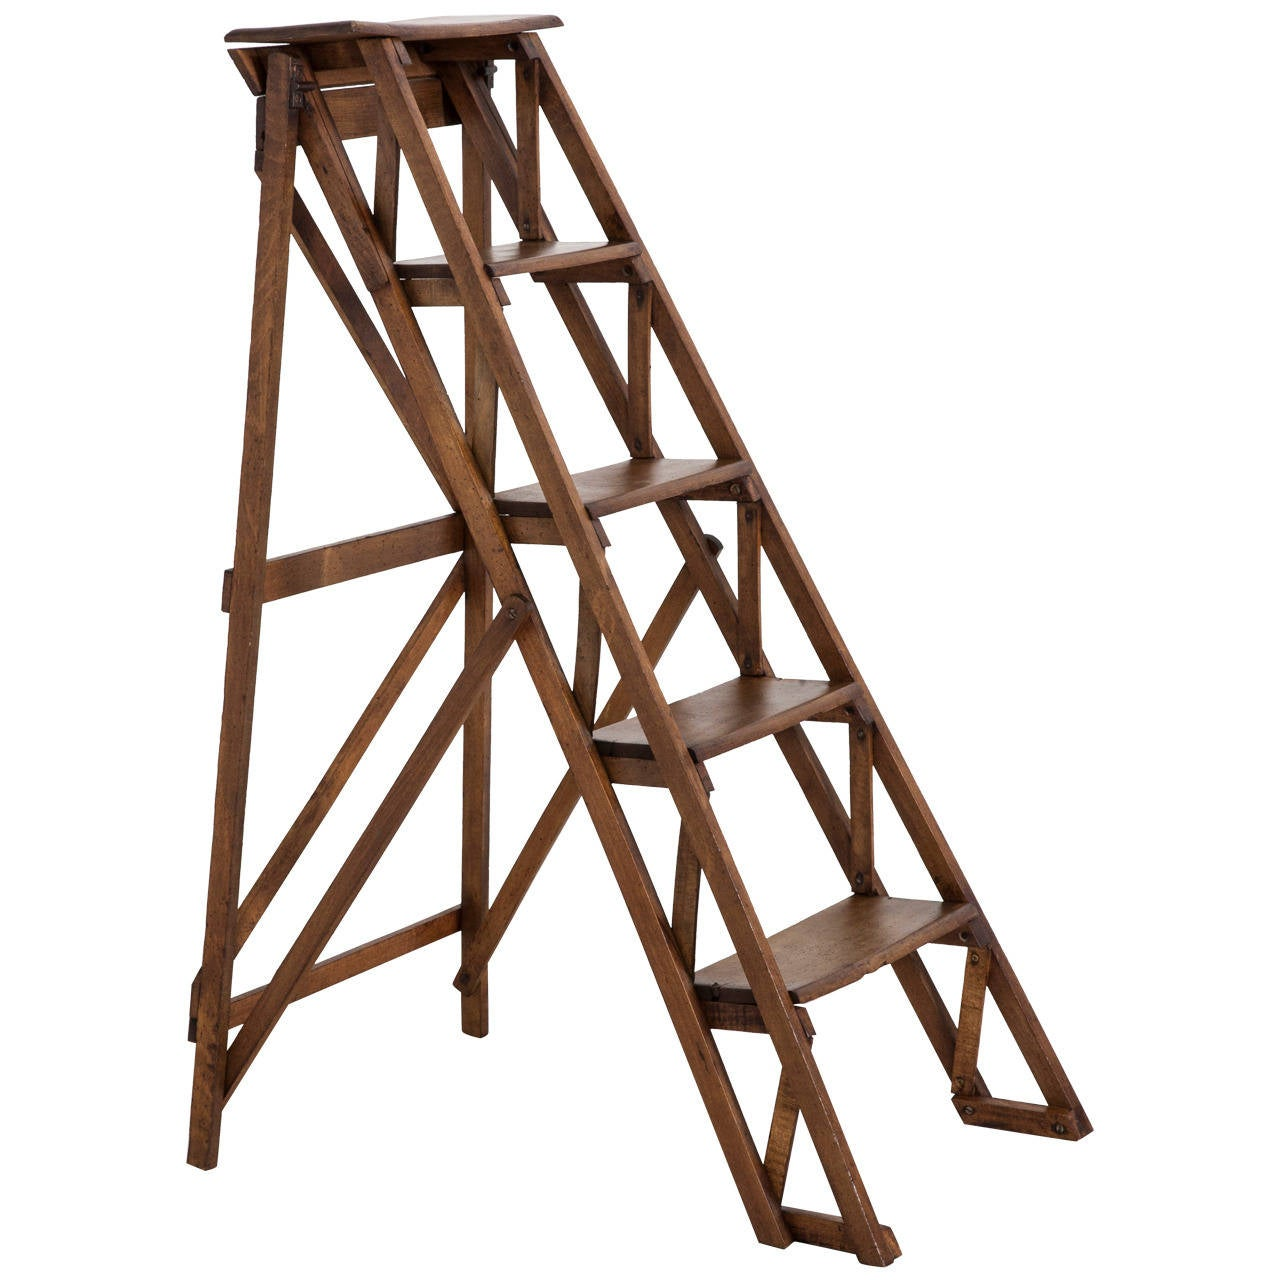 Handmade french folding library ladder at 1stdibs for Folding stairs